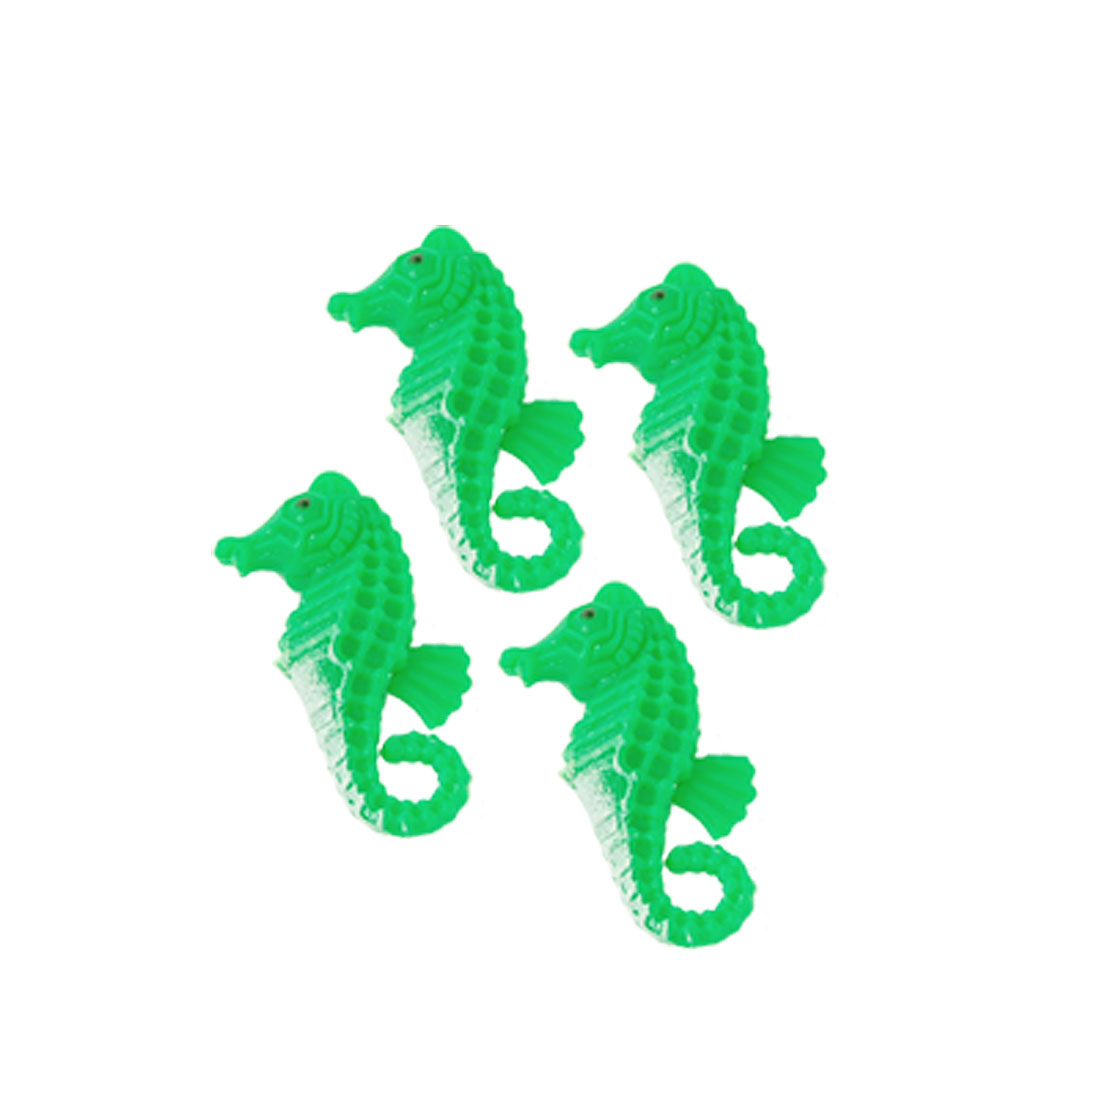 4 Pcs Green White Plastic Sea Horse Decoration for Aquarium Fish Tank